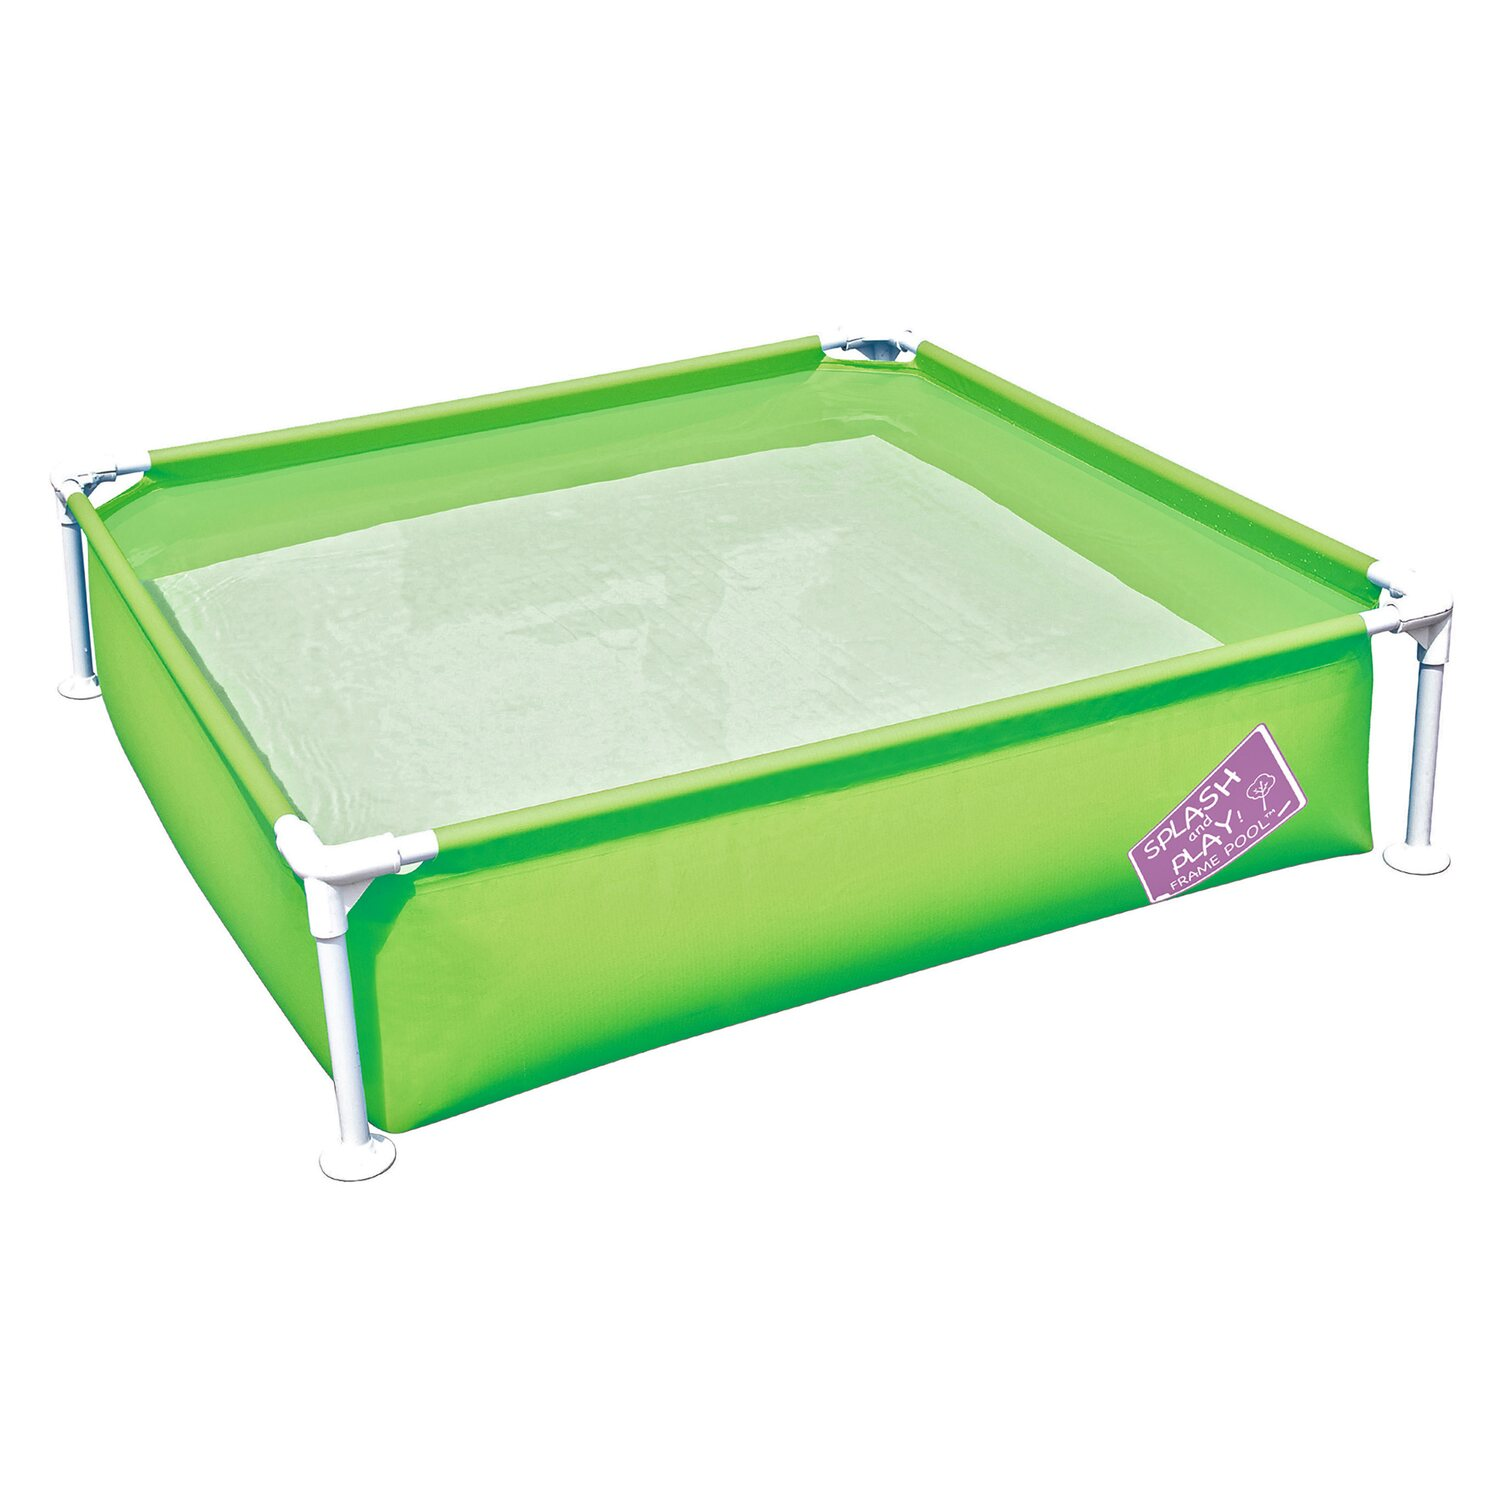 Bestway kinder frame pool kaufen bei obi for Bestway pool bei obi